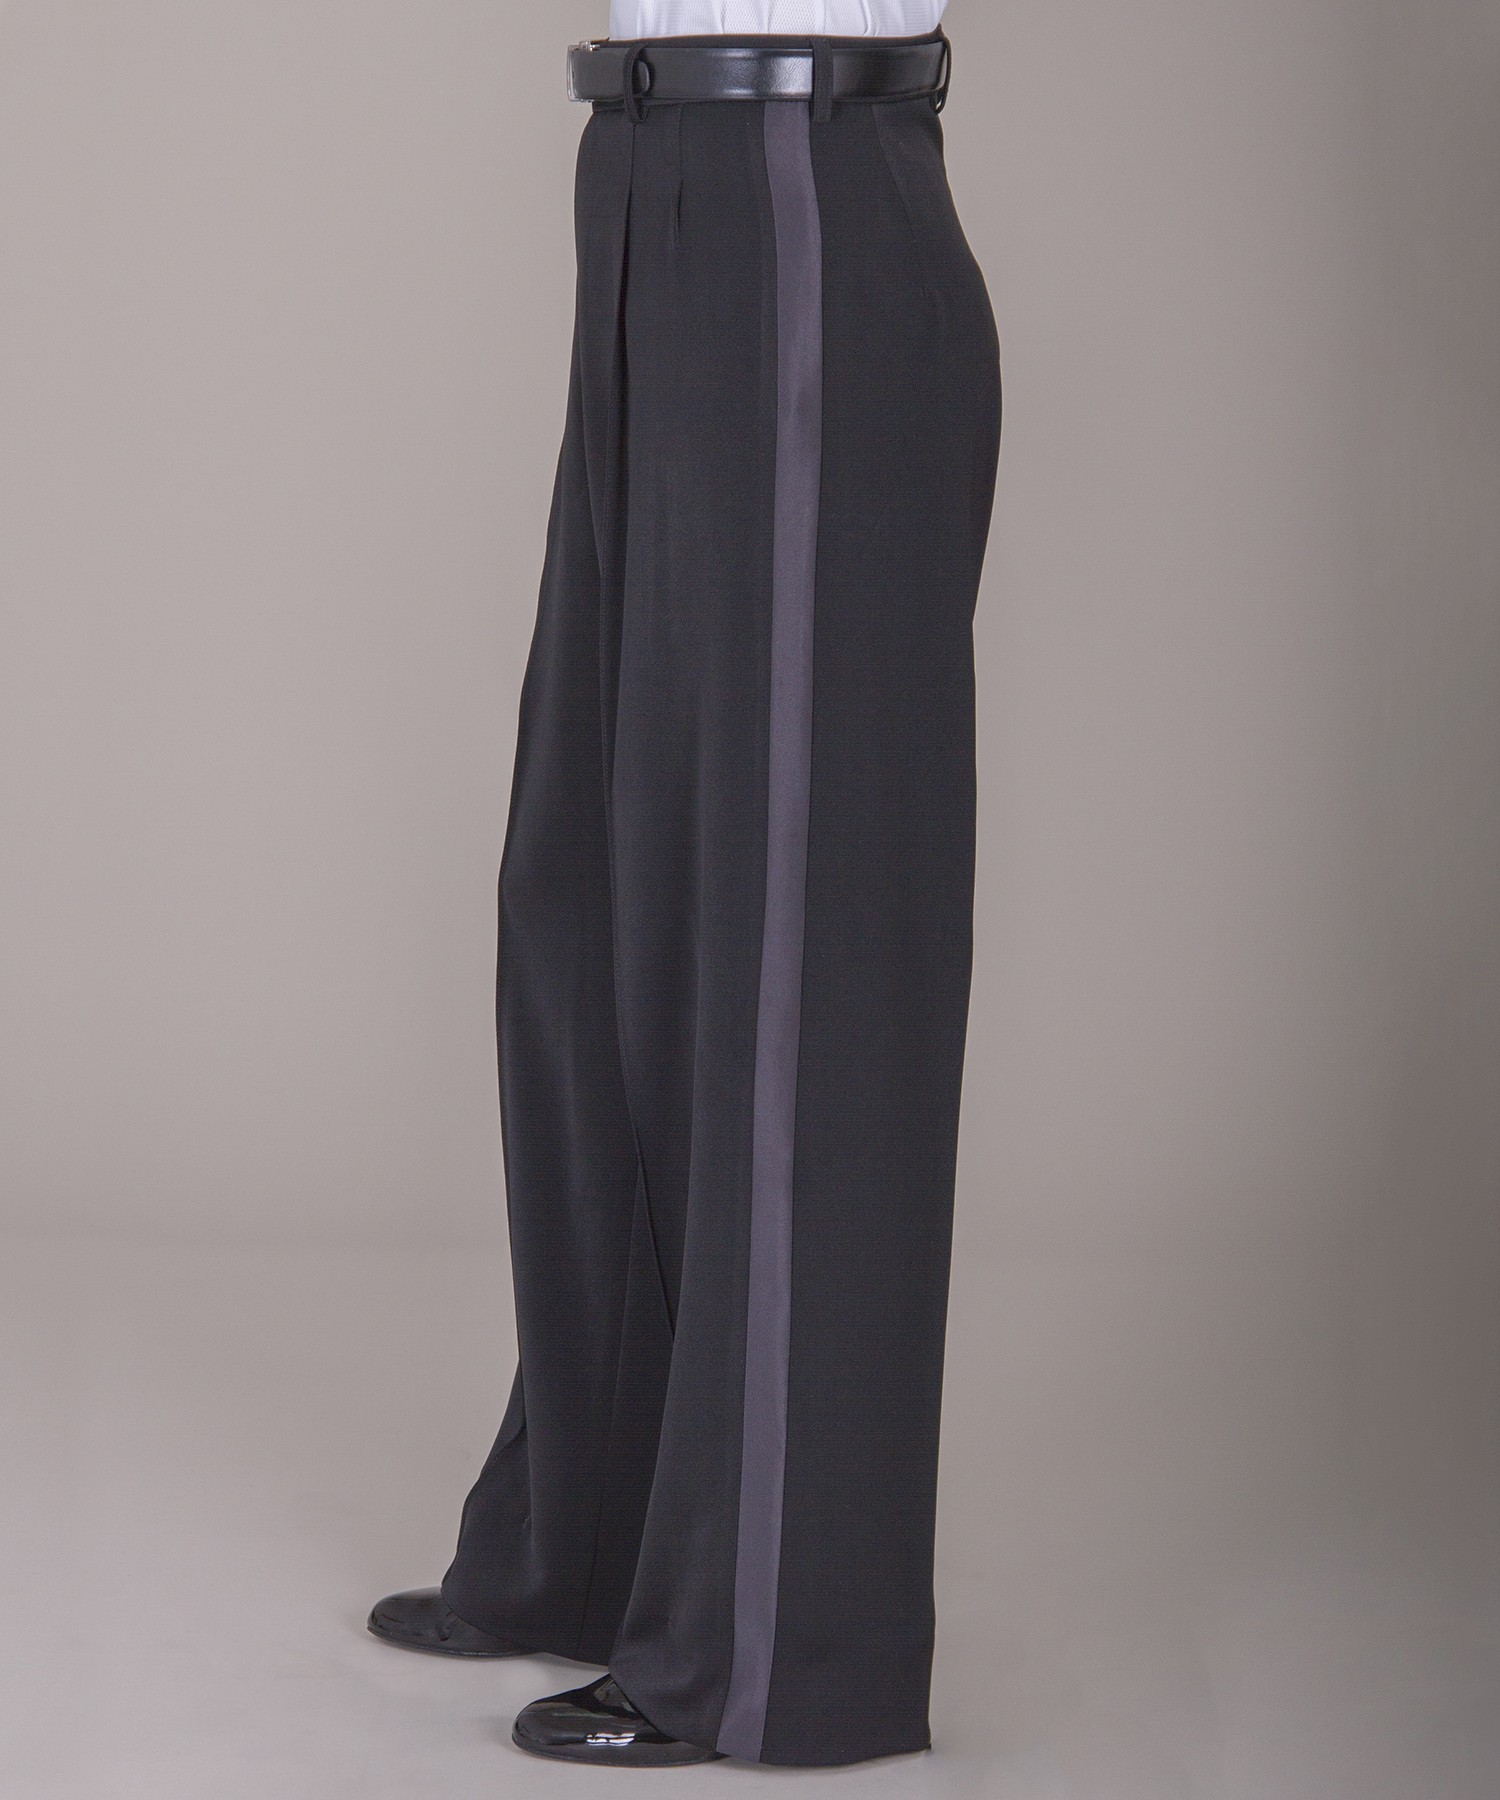 b734012d1 Men's Dance Pants, DSI London, 4005 Ballroom Trousers with Satin Stripe,  $175.00, from VEdance, the very best in ballroom and Latin dance shoes and  ...